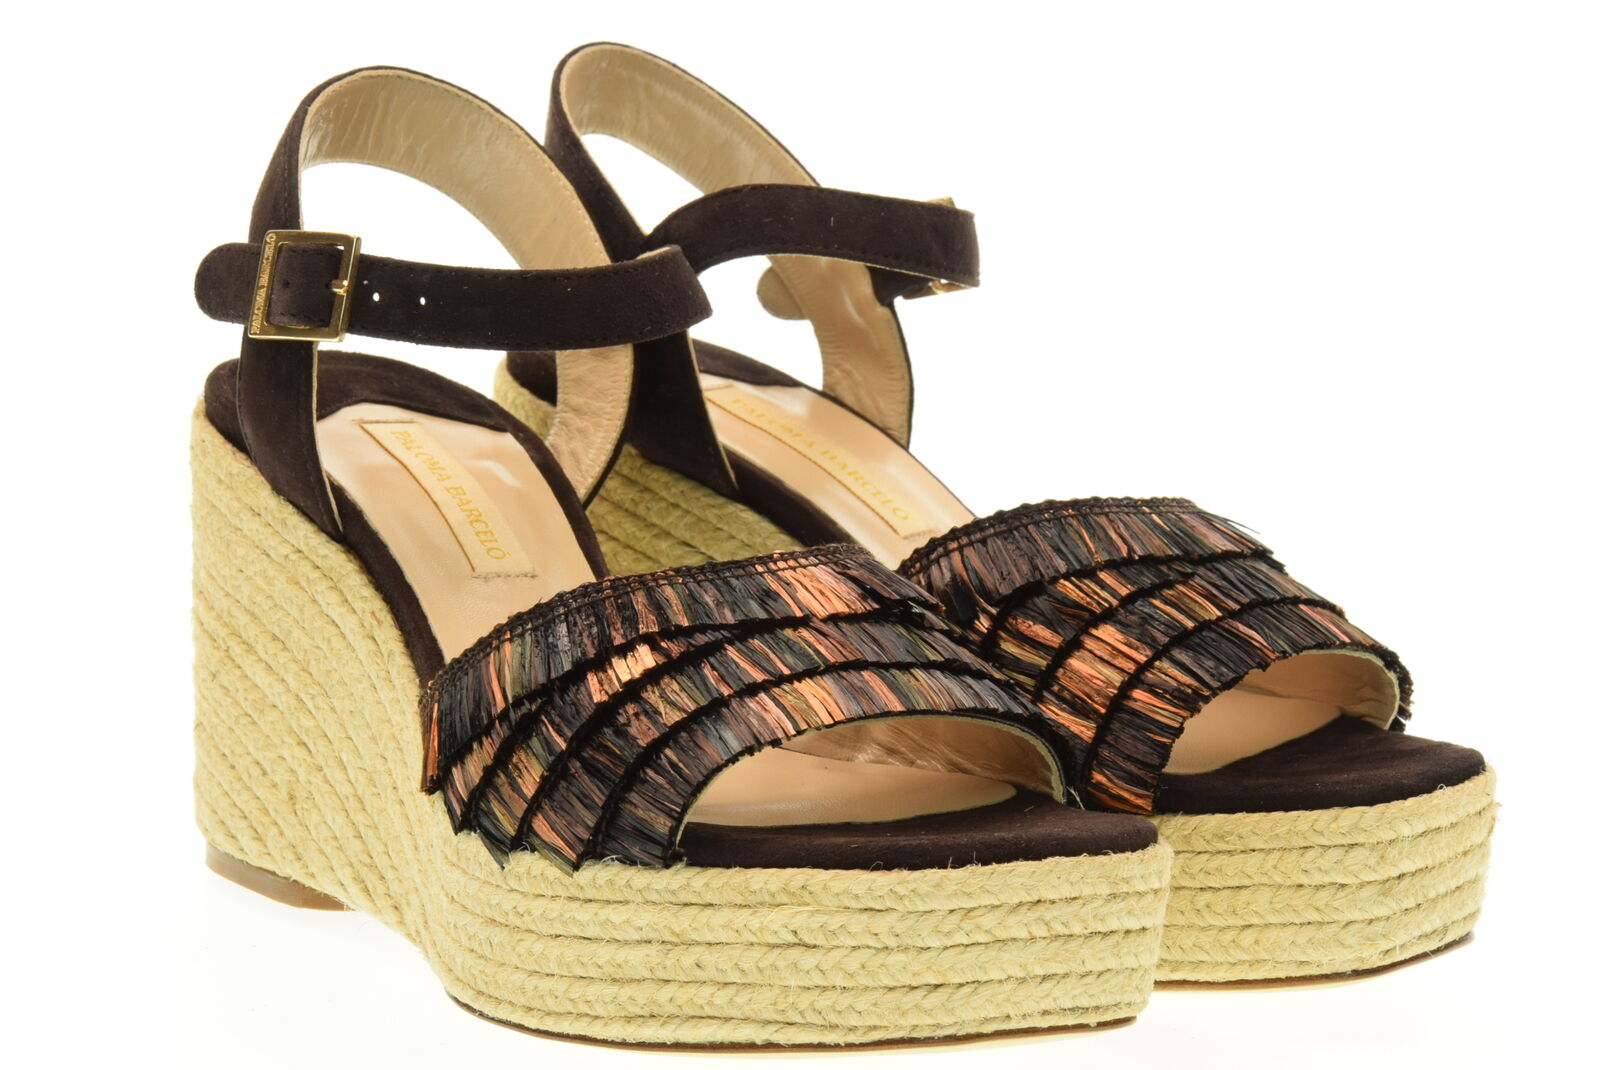 Paloma Barcelo' P17us Sandals femmes chaussures with wedge PGCO Rab1